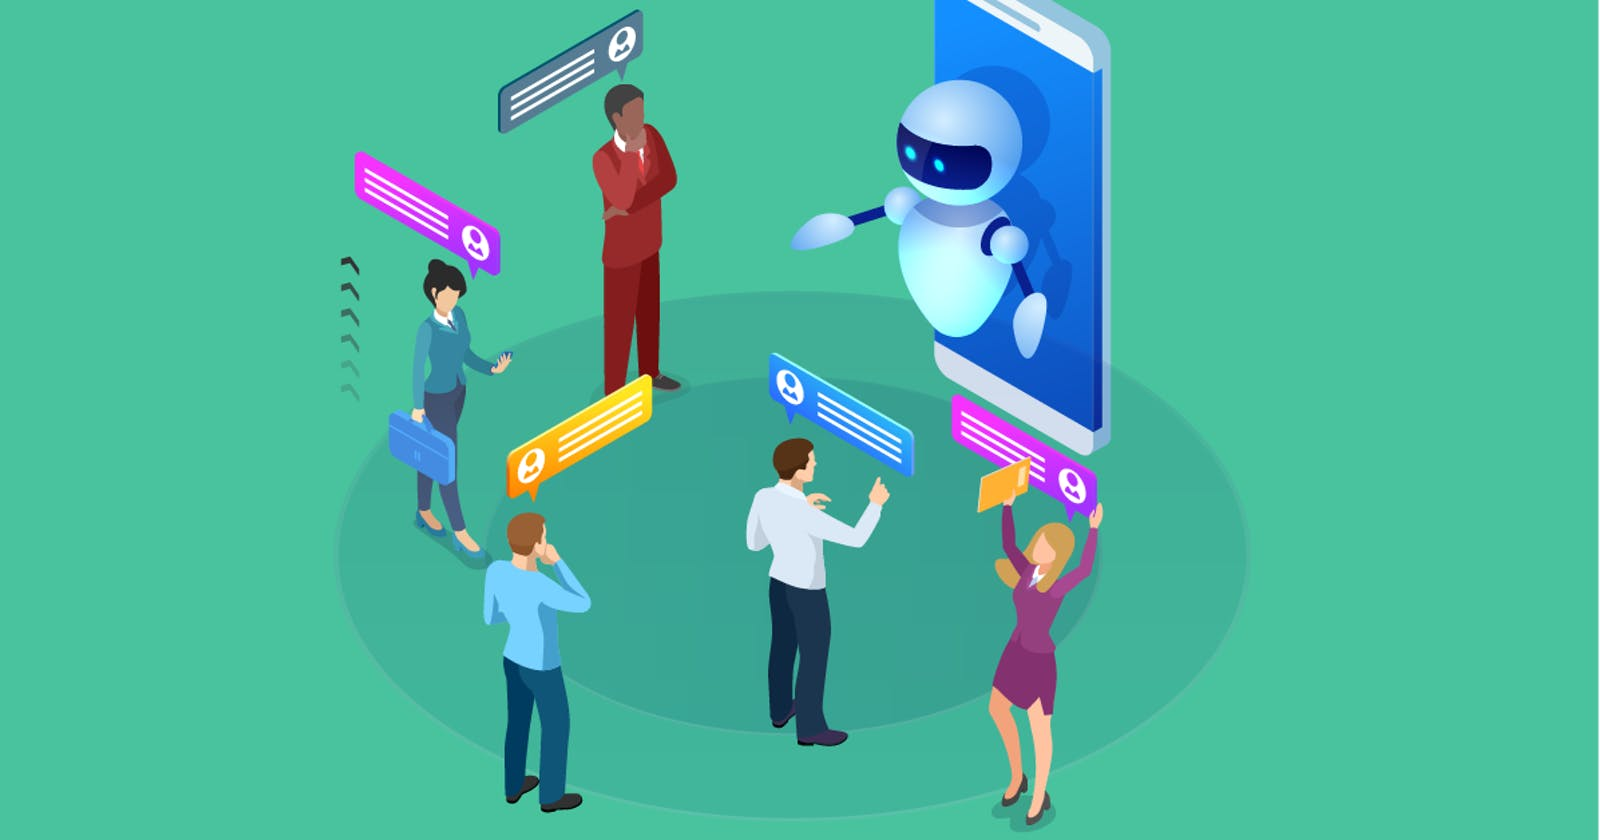 Get the emotion behind a conversation with IBM Watson